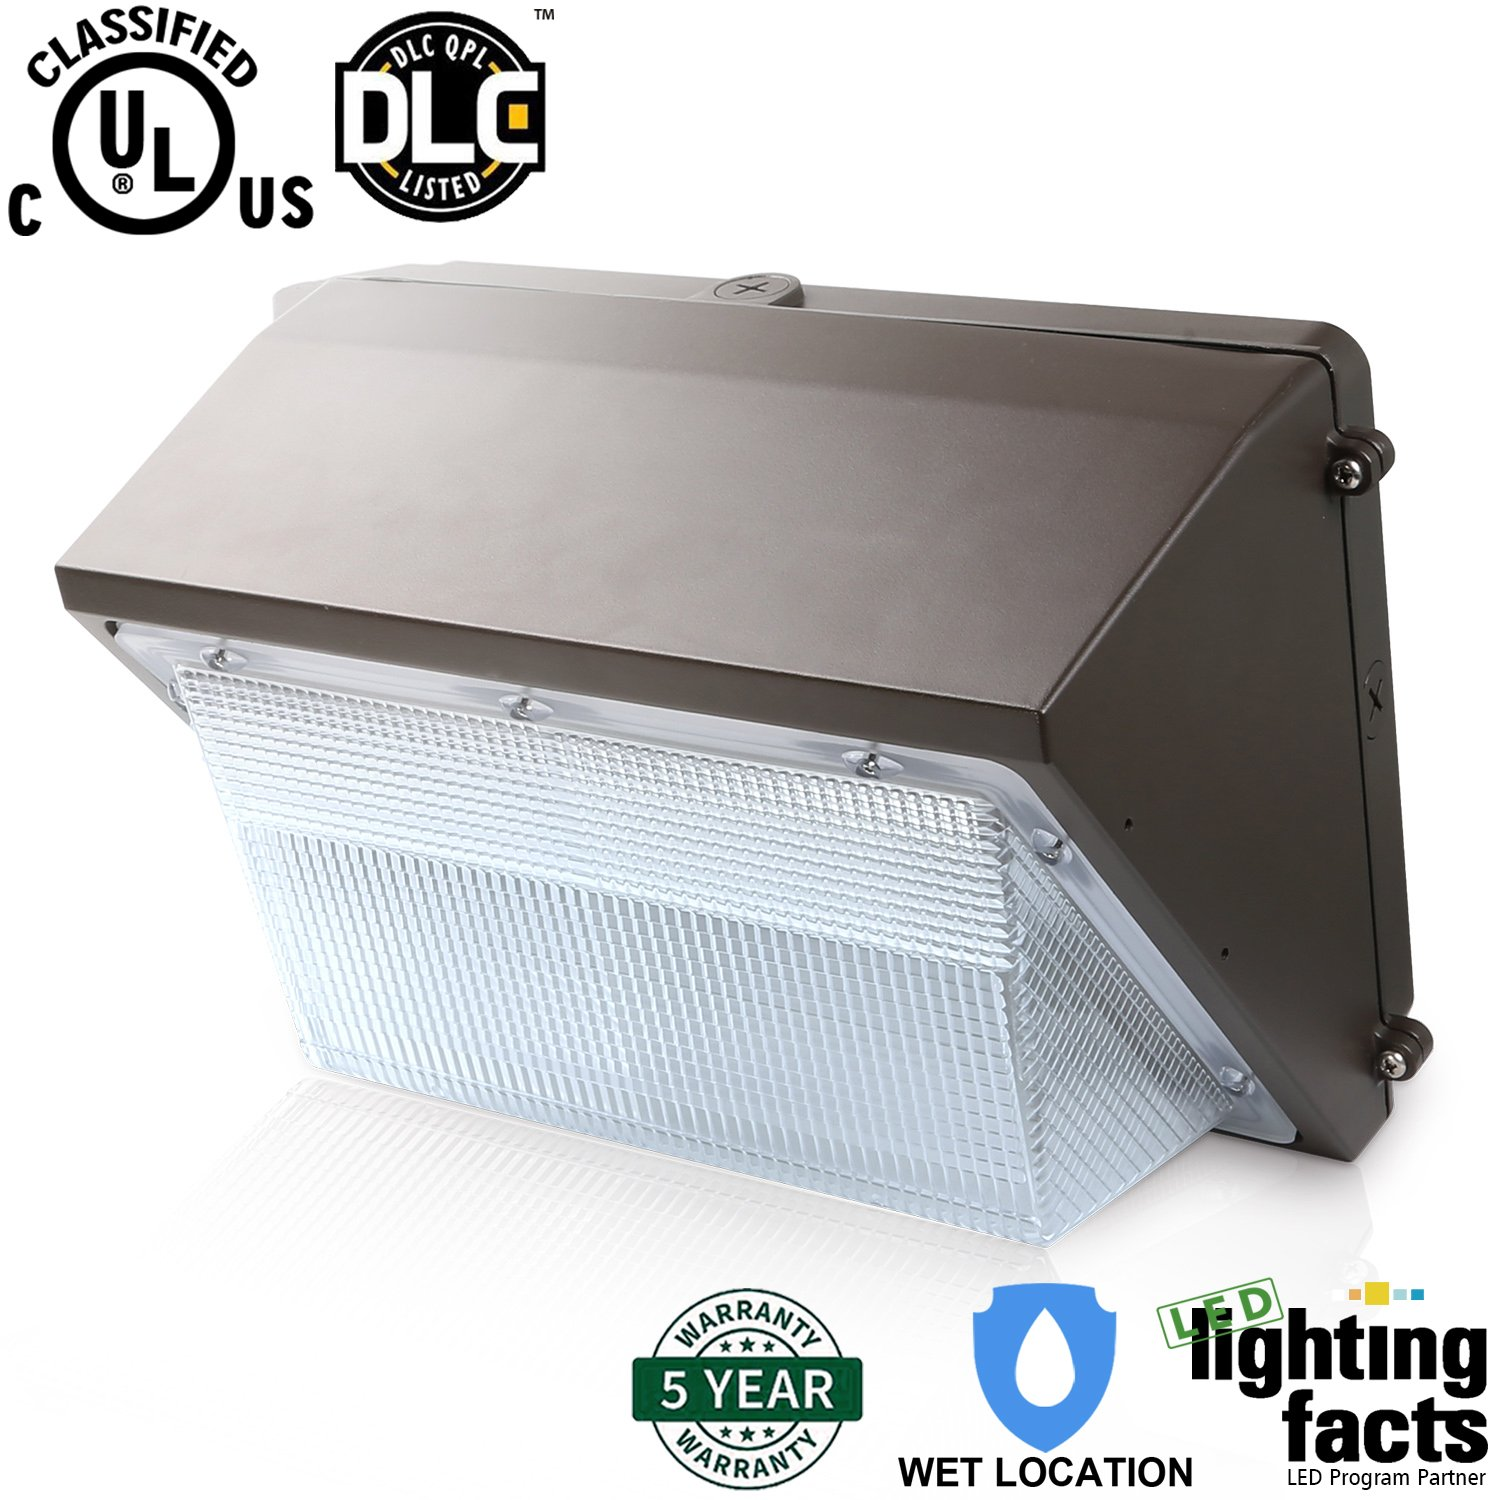 Led Wall Pack Exterior Lights: Hykolity 70W LED Wall Pack Outdoor Lighting Fixture 400W